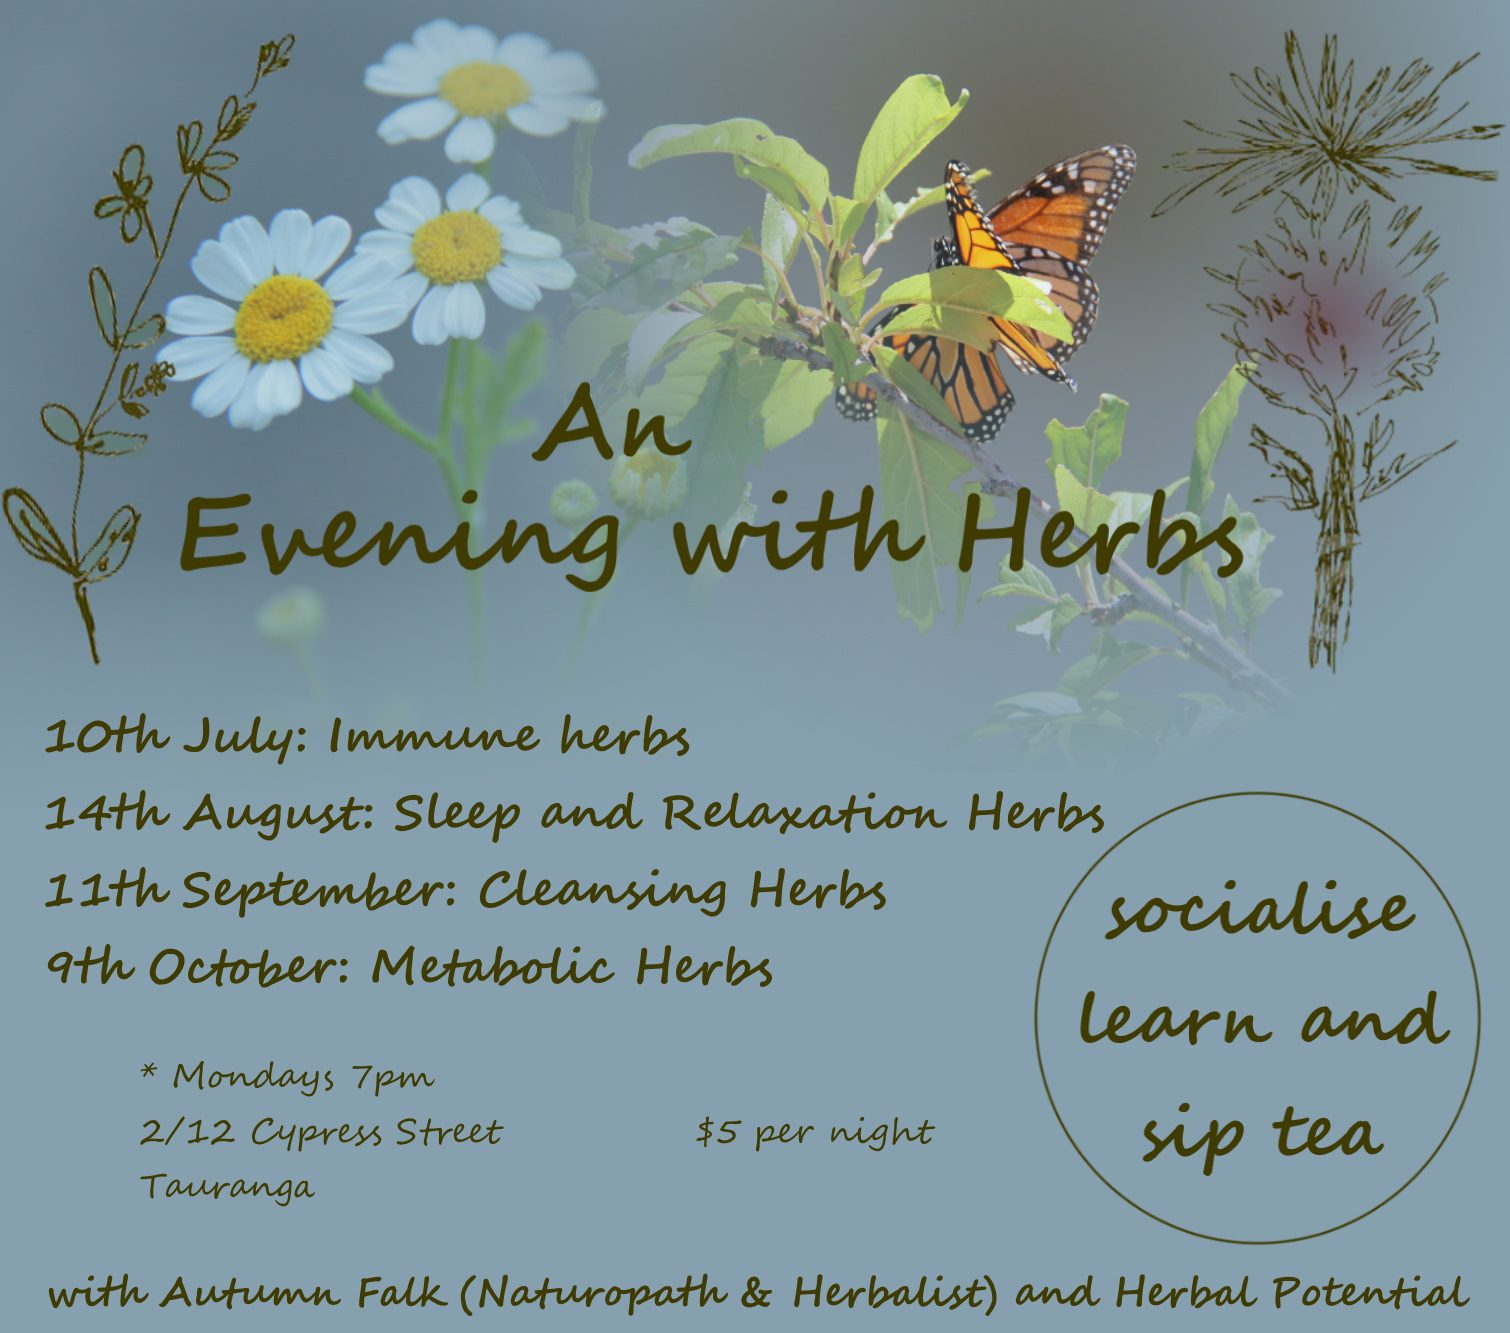 Course: An Evening with Herbs - Autumn Falk (Naturopath & Herbalist) & Herbal Potential